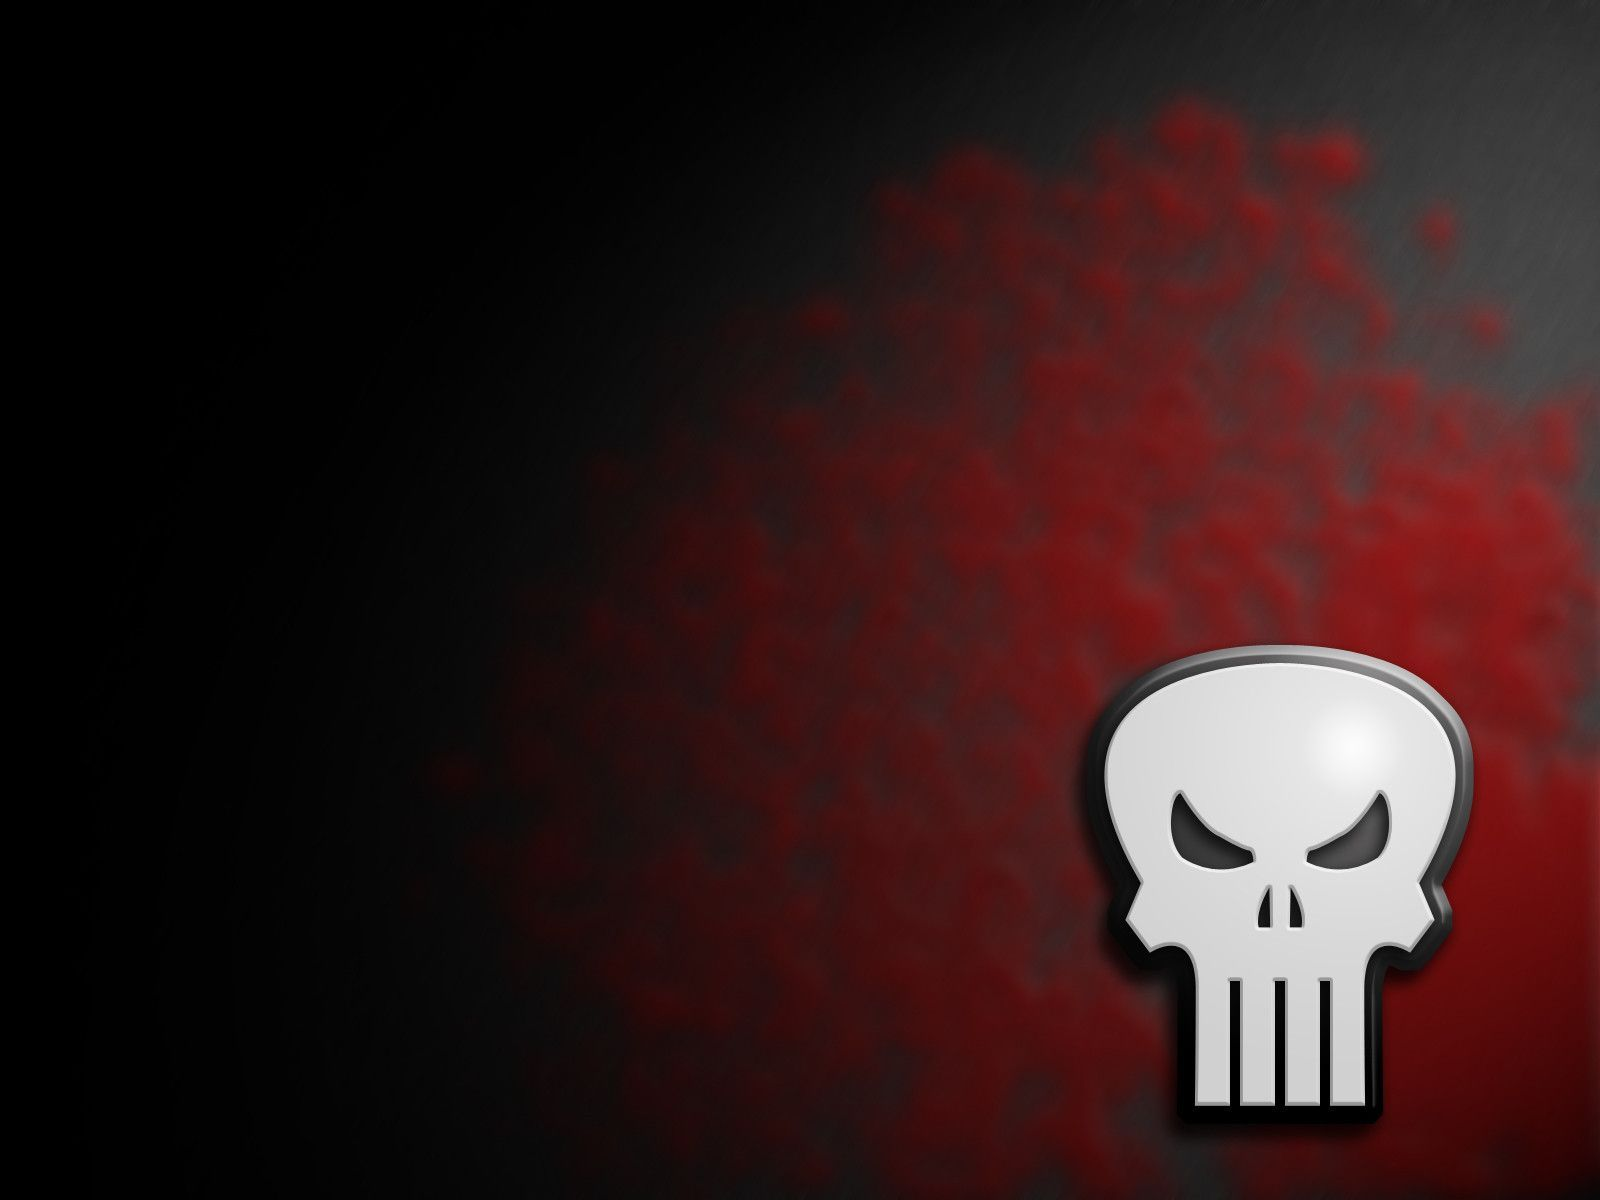 the punisher hd wallpapers backgrounds wallpaper 1600×1200